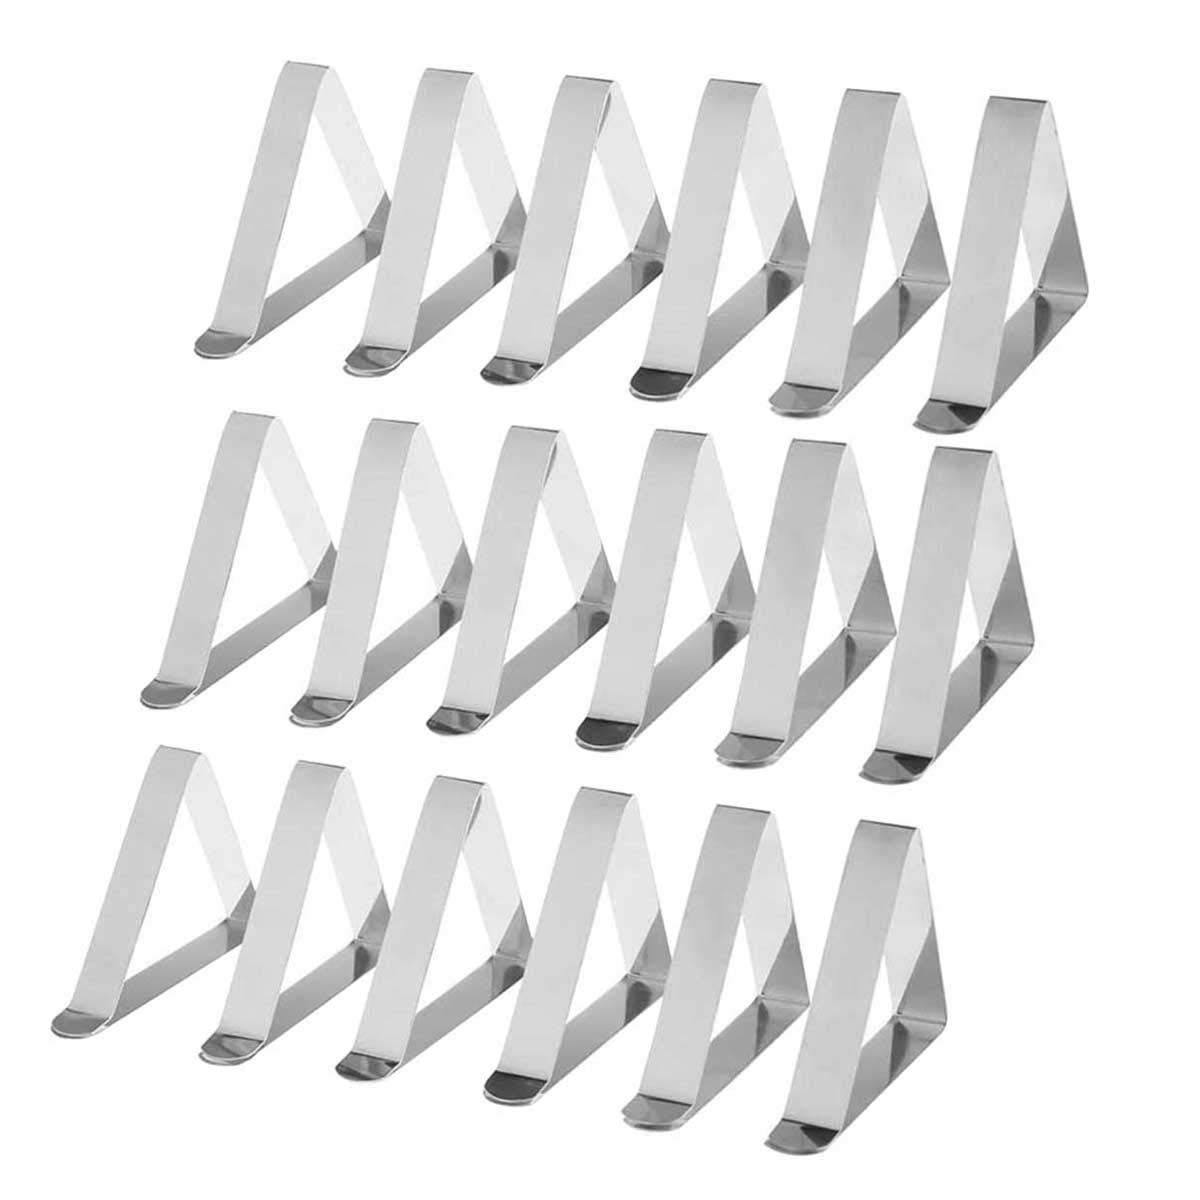 Sun Kea Picnic Tablecloth Clips Endurance Stainless Steel Outdoor Table Cover Clamps Adjustable Table Cloth Holders & Skirt Clip(25pcs)